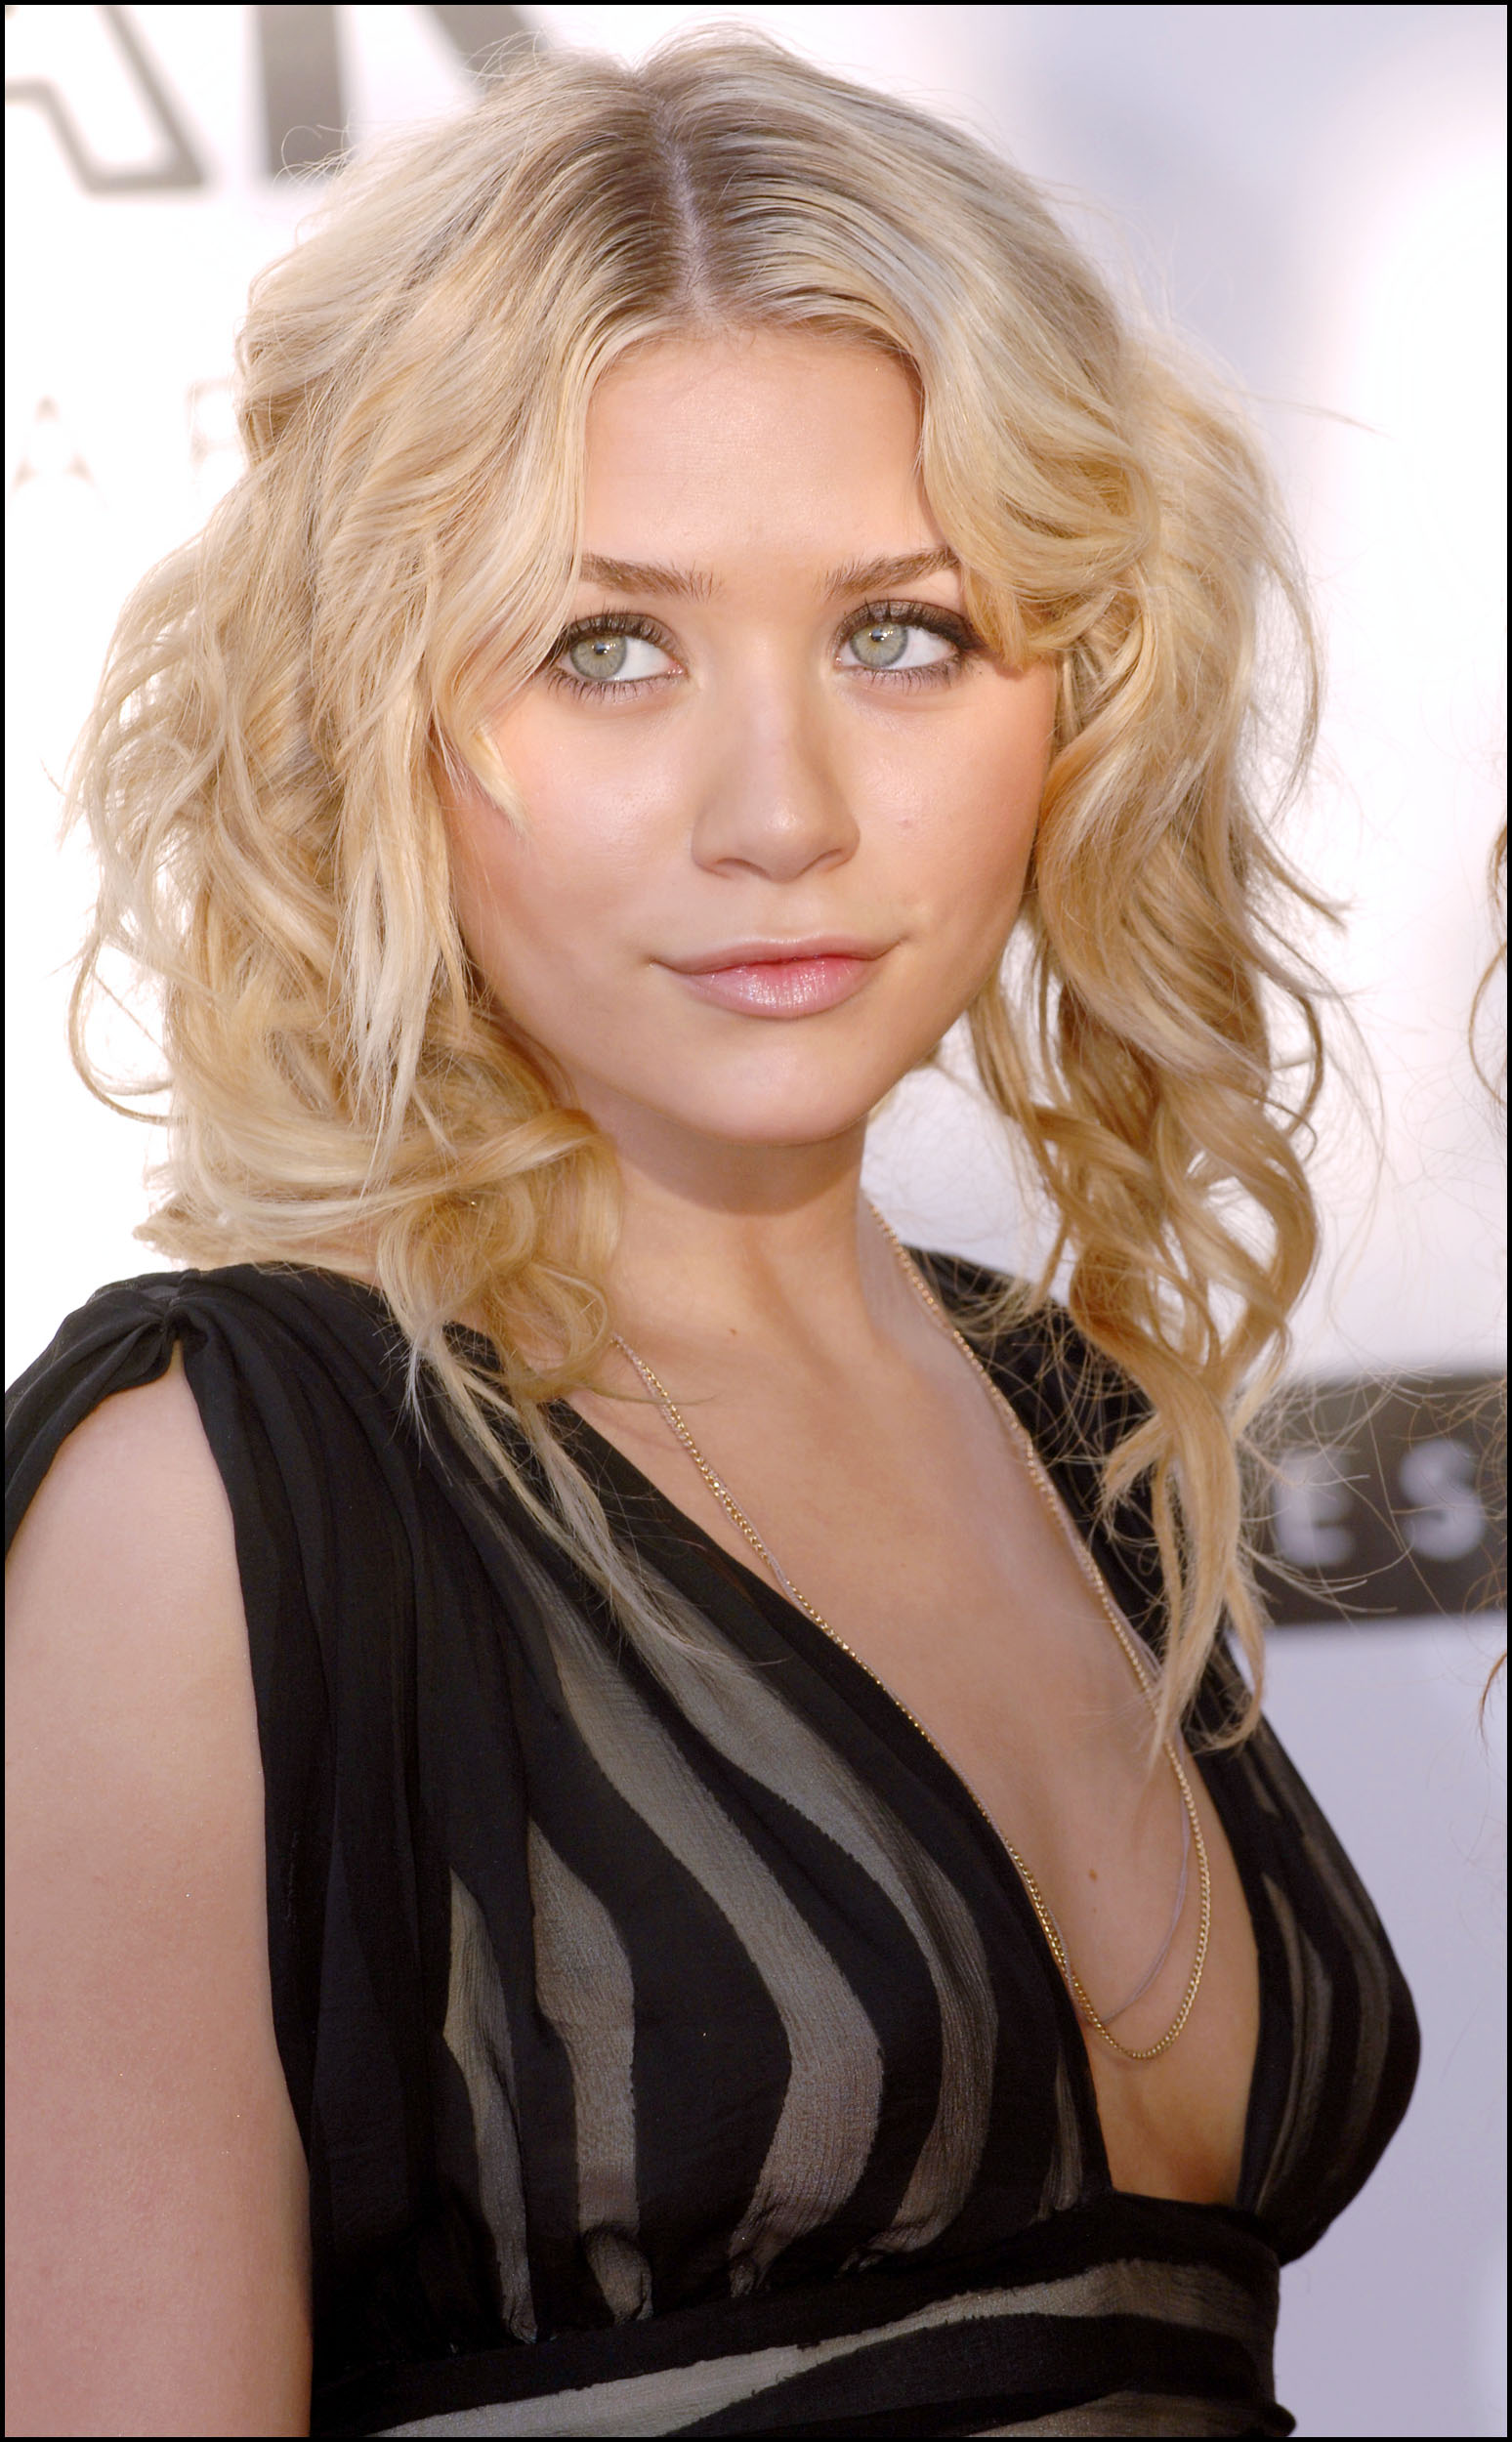 nude pictures of ashley olsen